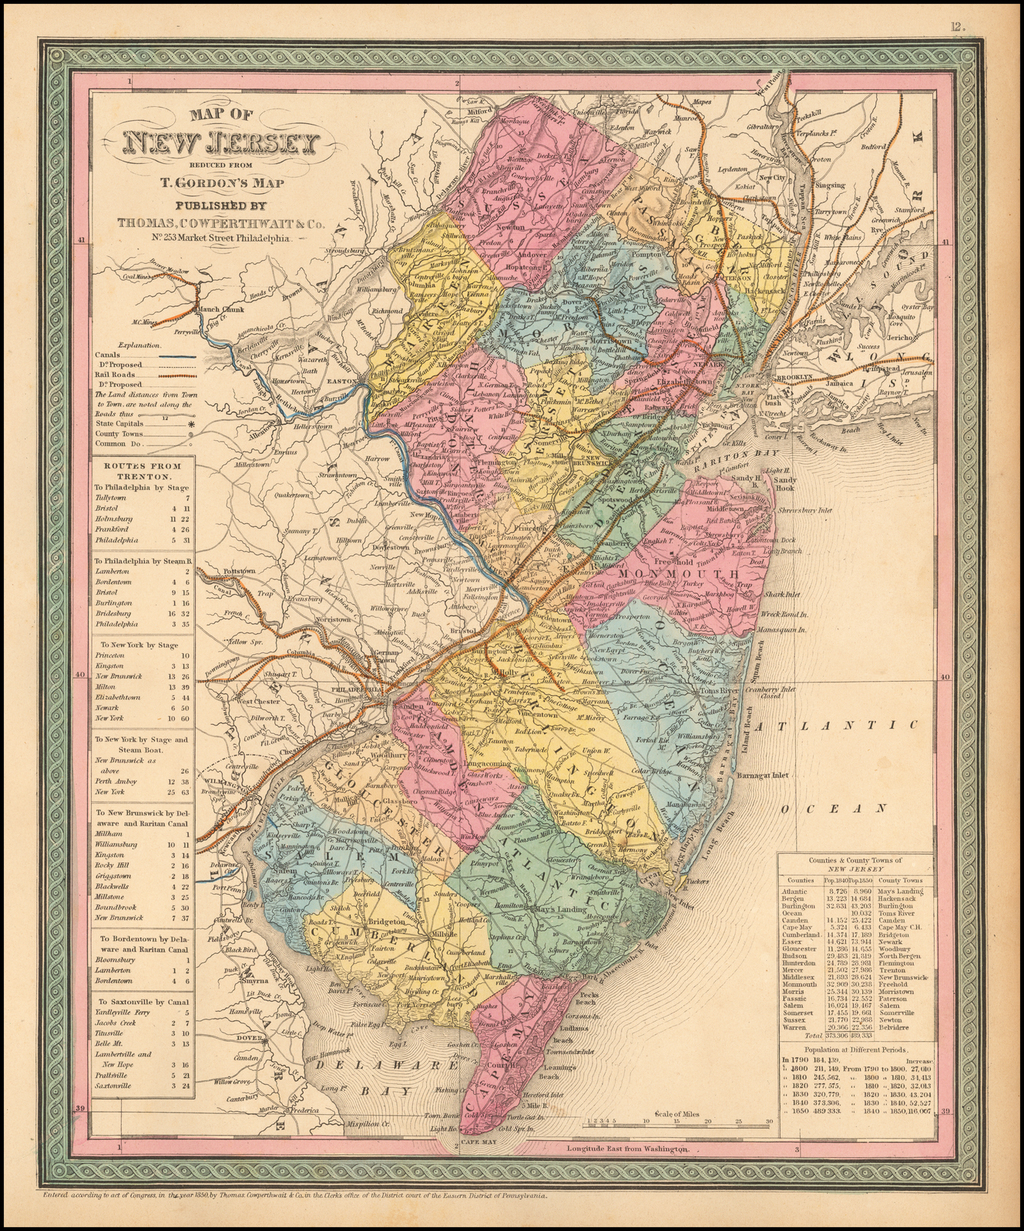 Map Of New Jersey Compiled From The latest authorities….. By Thomas, Cowperthwait & Co.